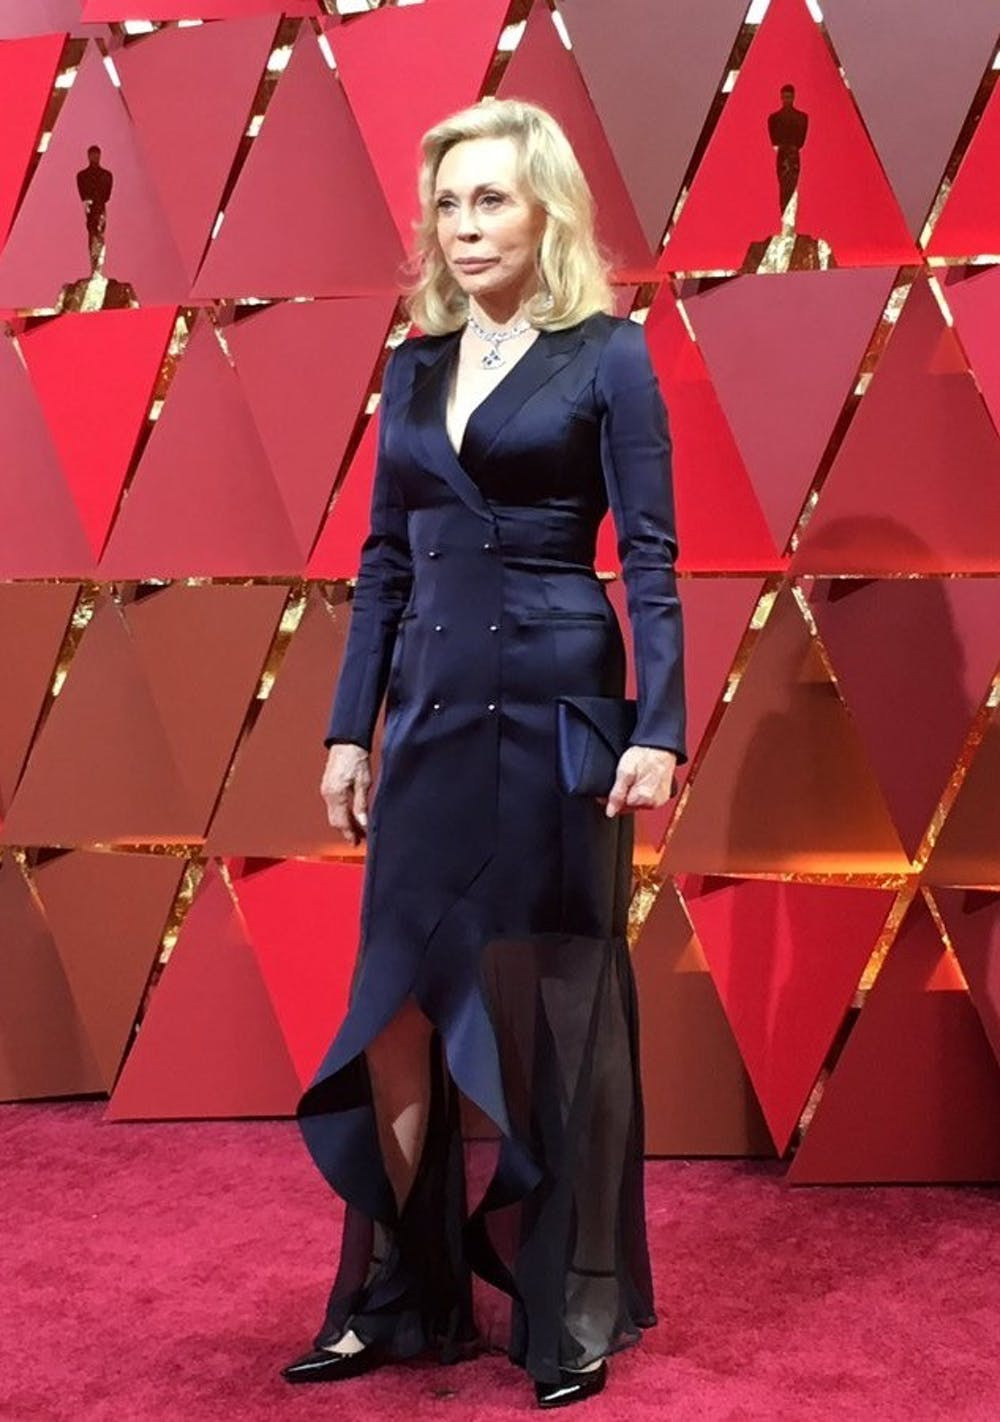 faye-dunaway-at-the-oscars-2017-1-1